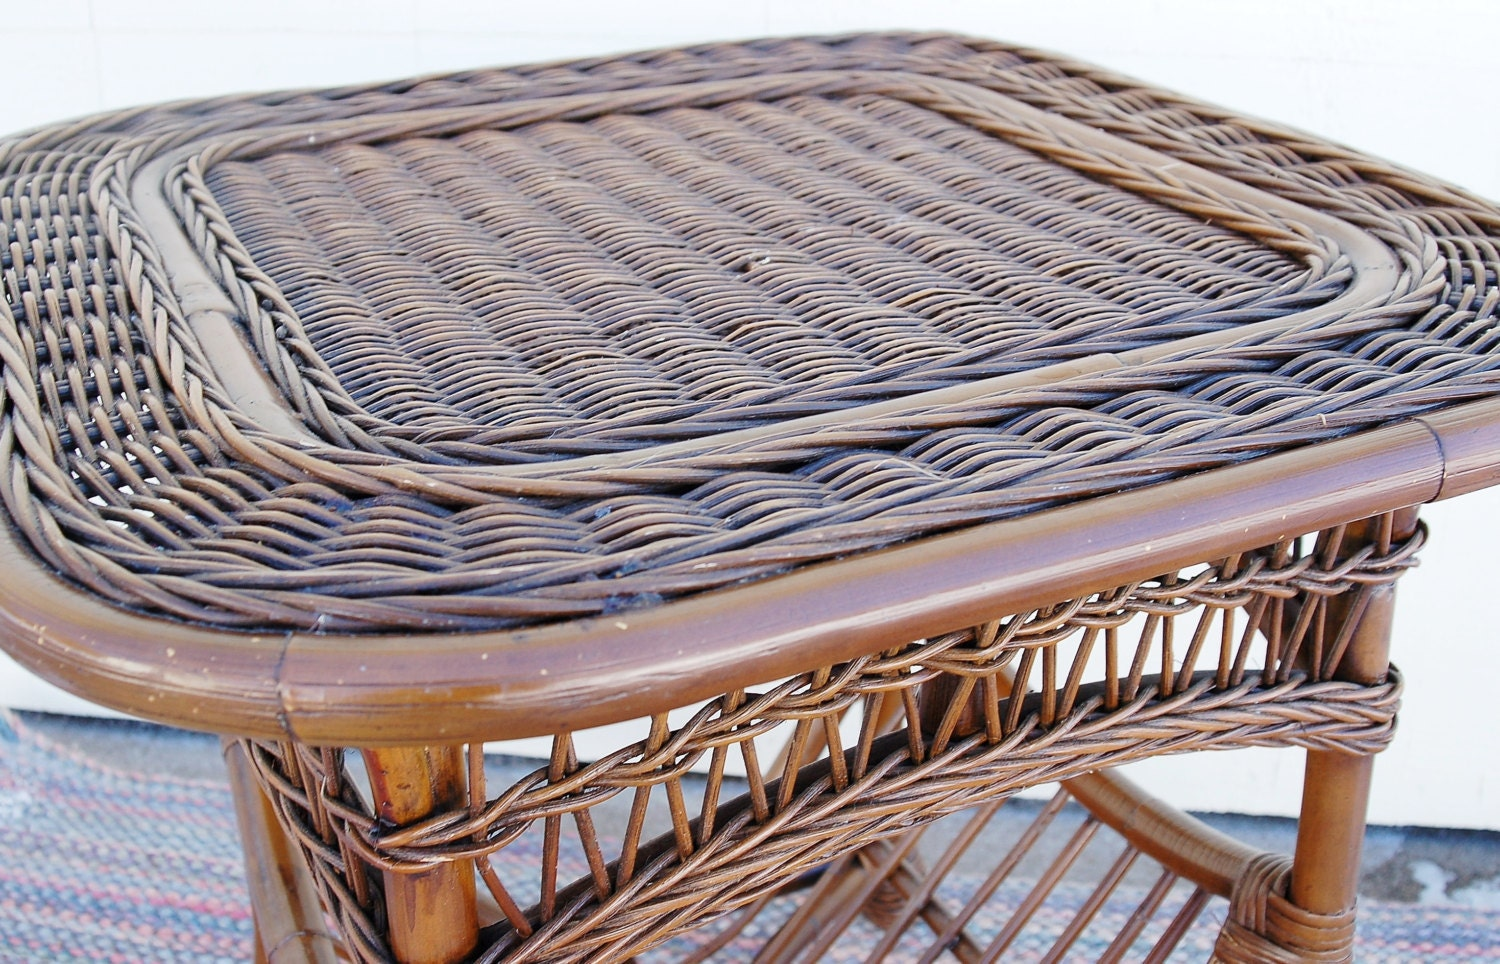 Rattan Reed Wicker Table Built In Magazine Rack Cane Bamboo